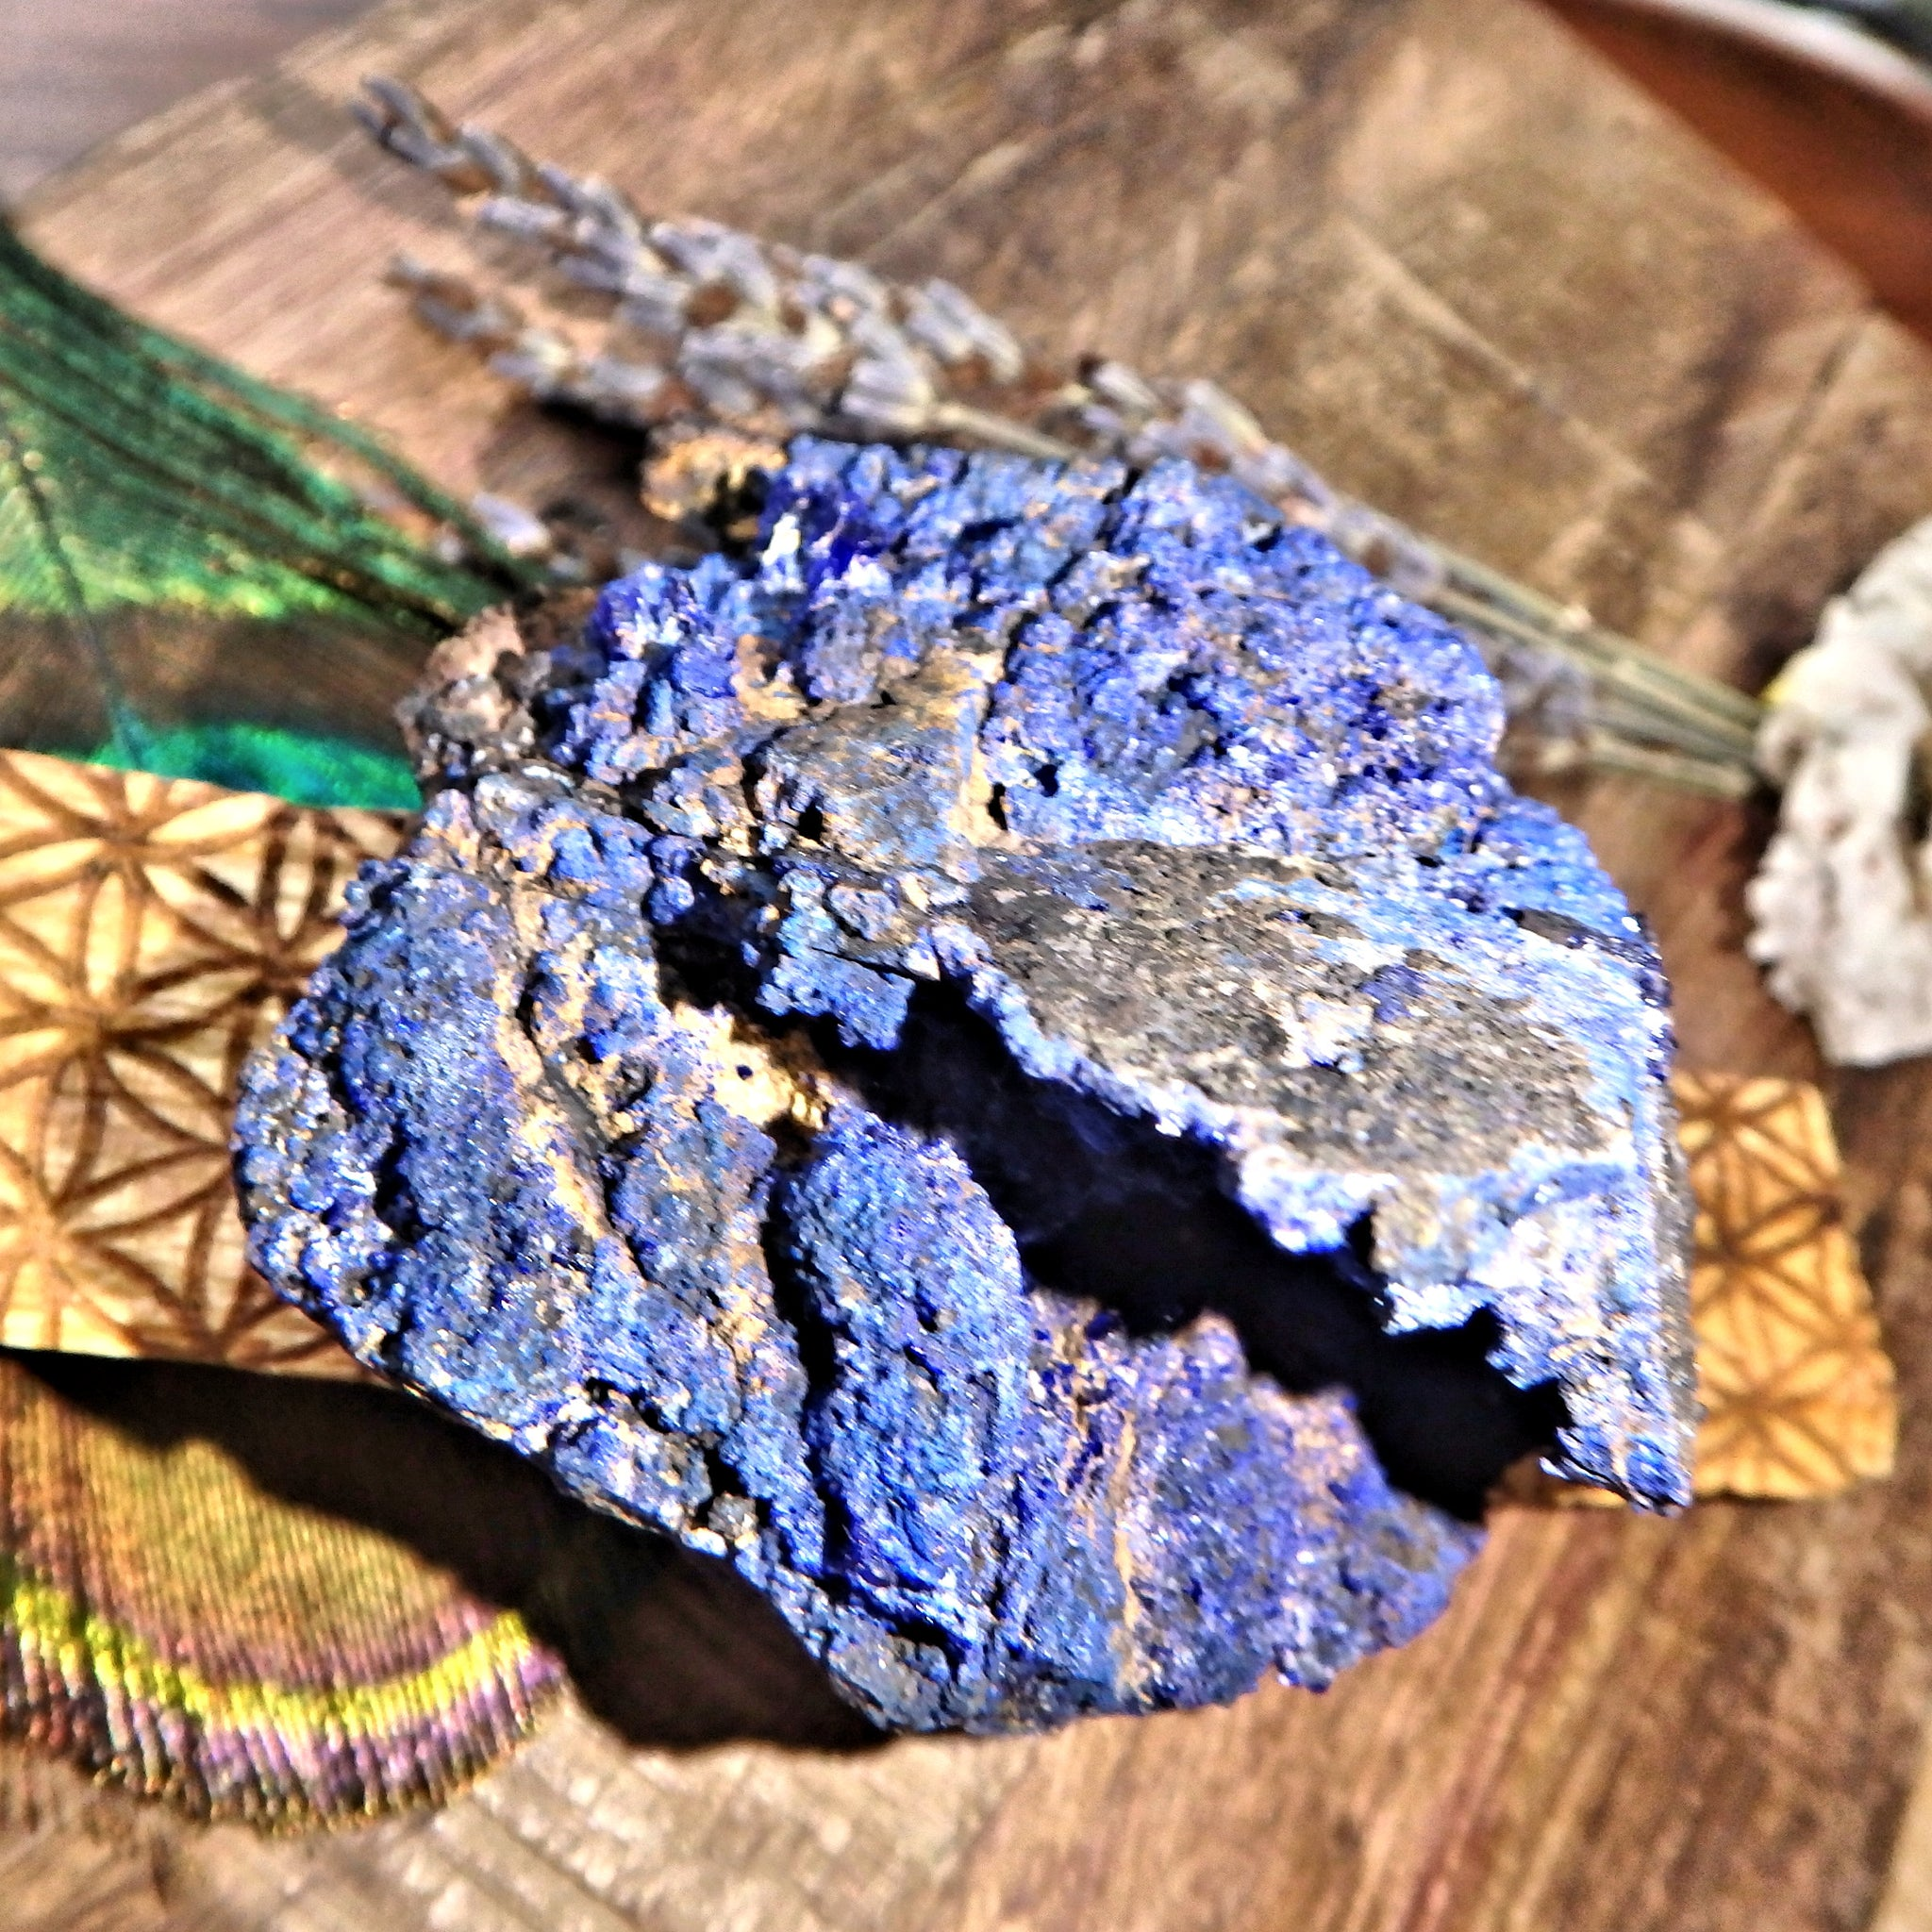 Natural Cobalt Blue Deep Cave Azurite Geode From Morenci Mine Arizona